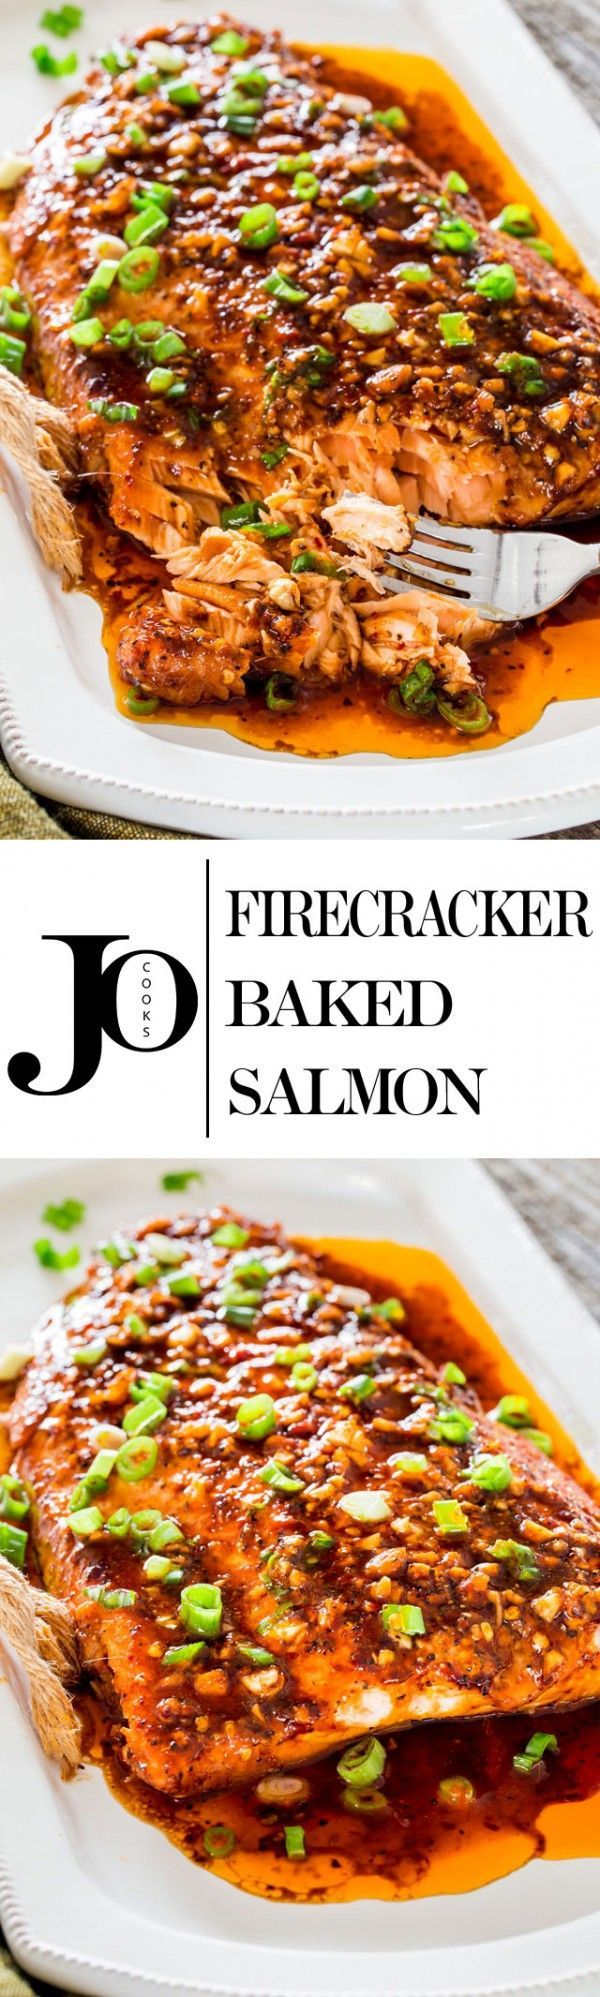 Get the recipe ♥ Firecracker Baked Salmon @recipes_to_go